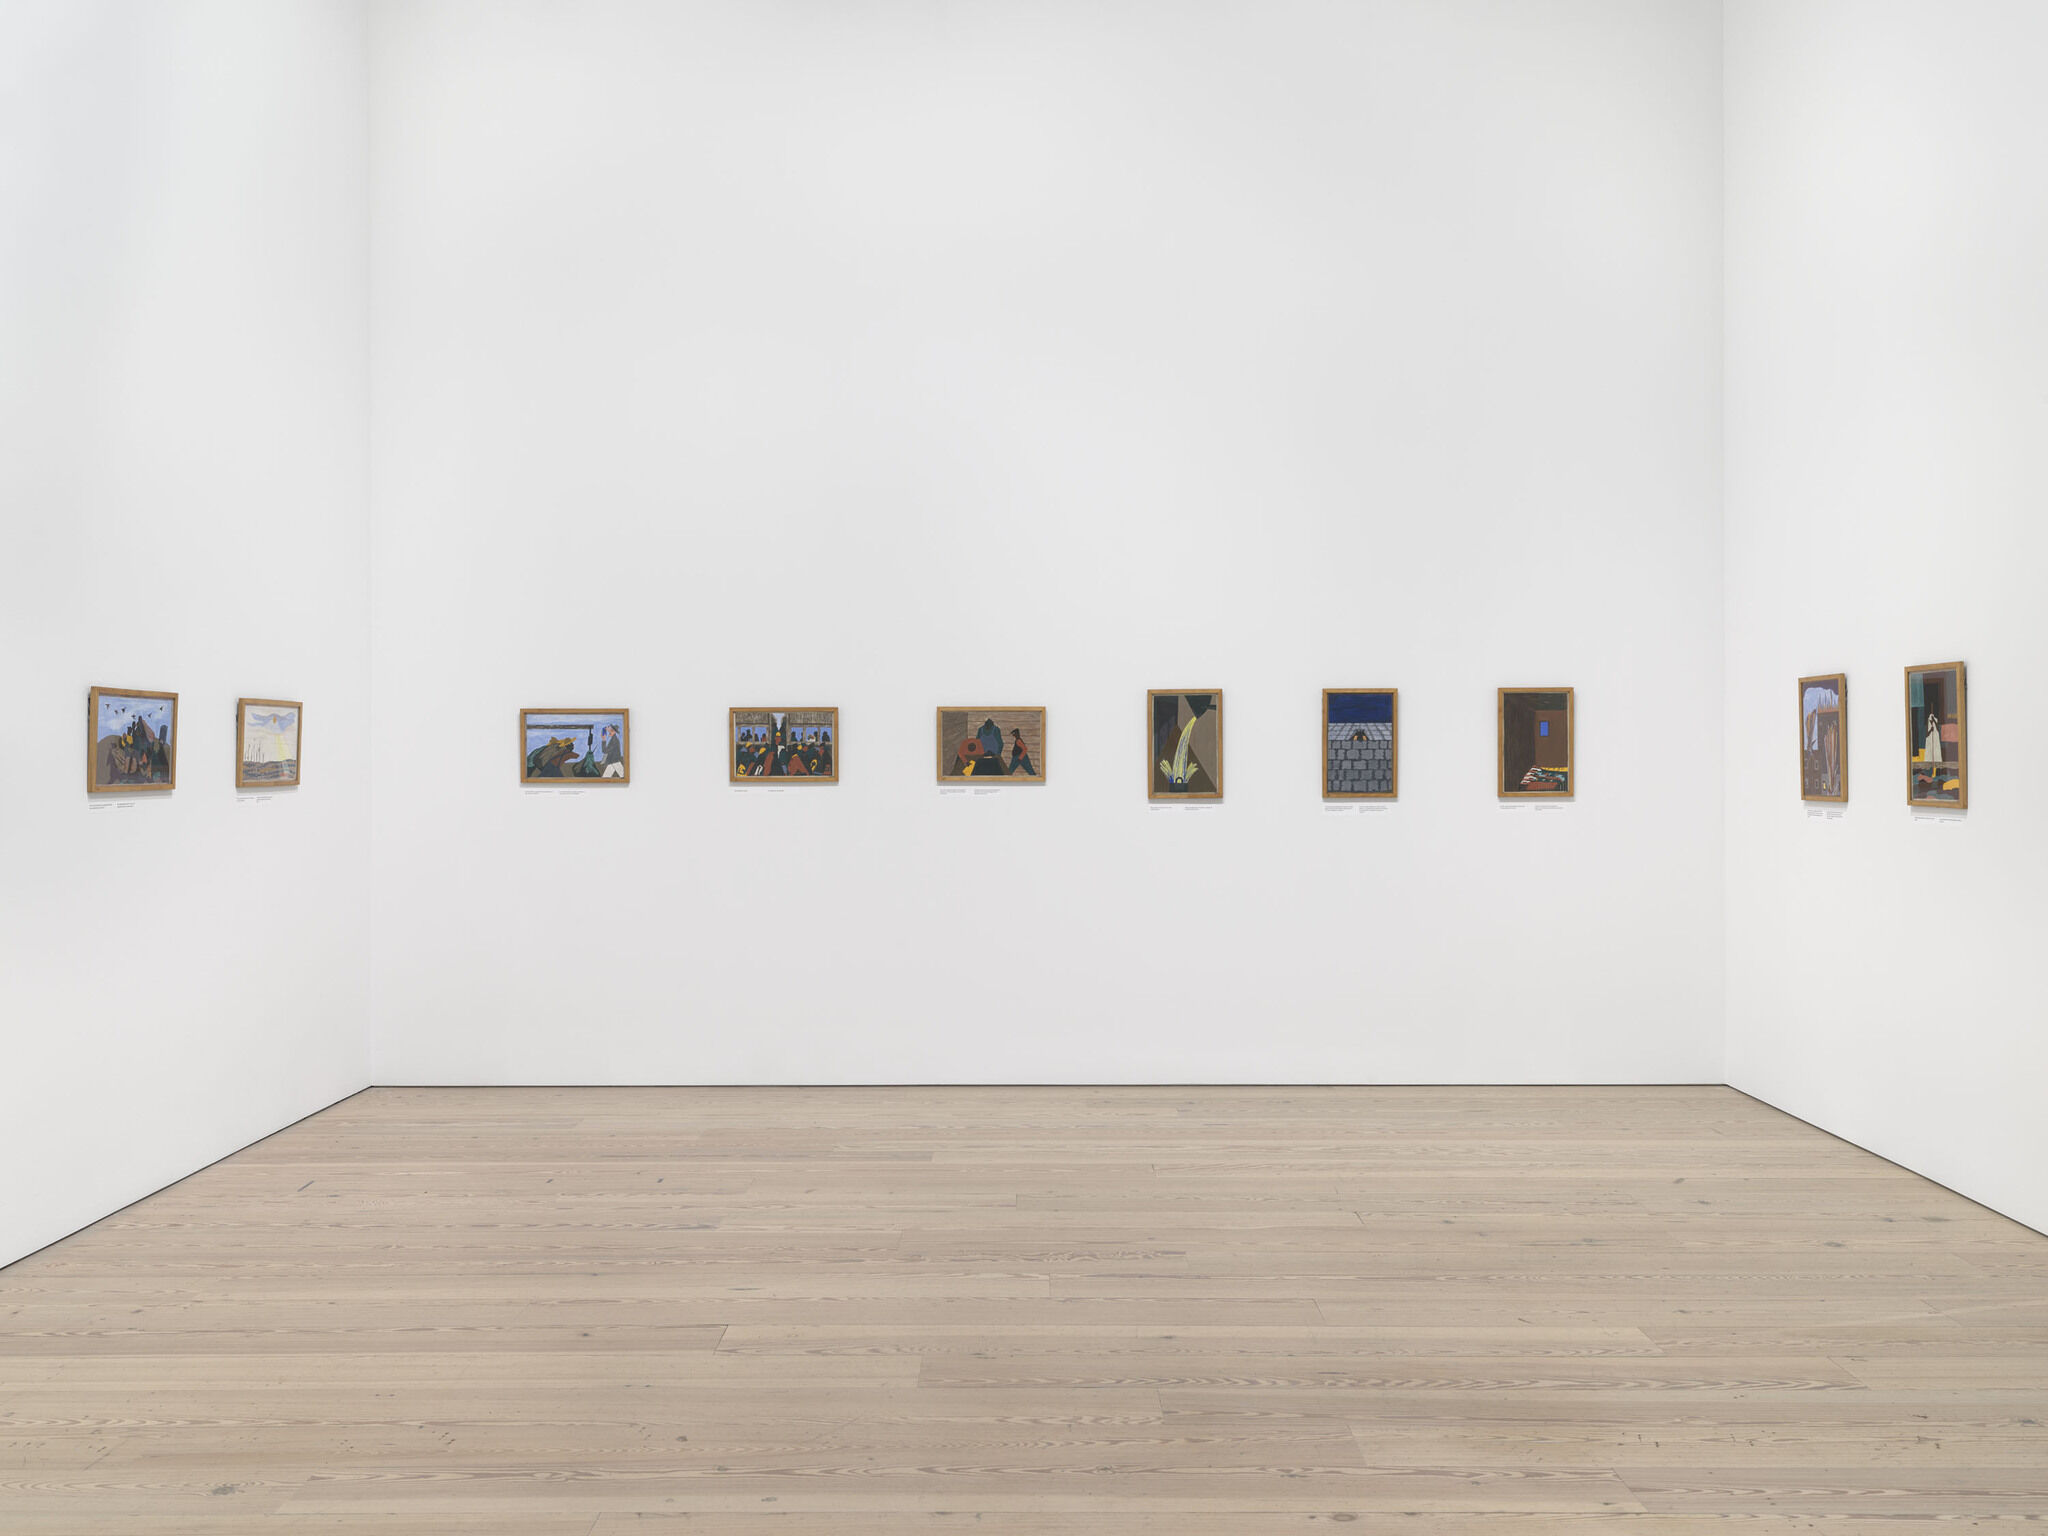 Gallery view of Jacob Lawrence's The Migration Series in Vida Americana: Mexican Muralists Remake American Art, 1925–1945